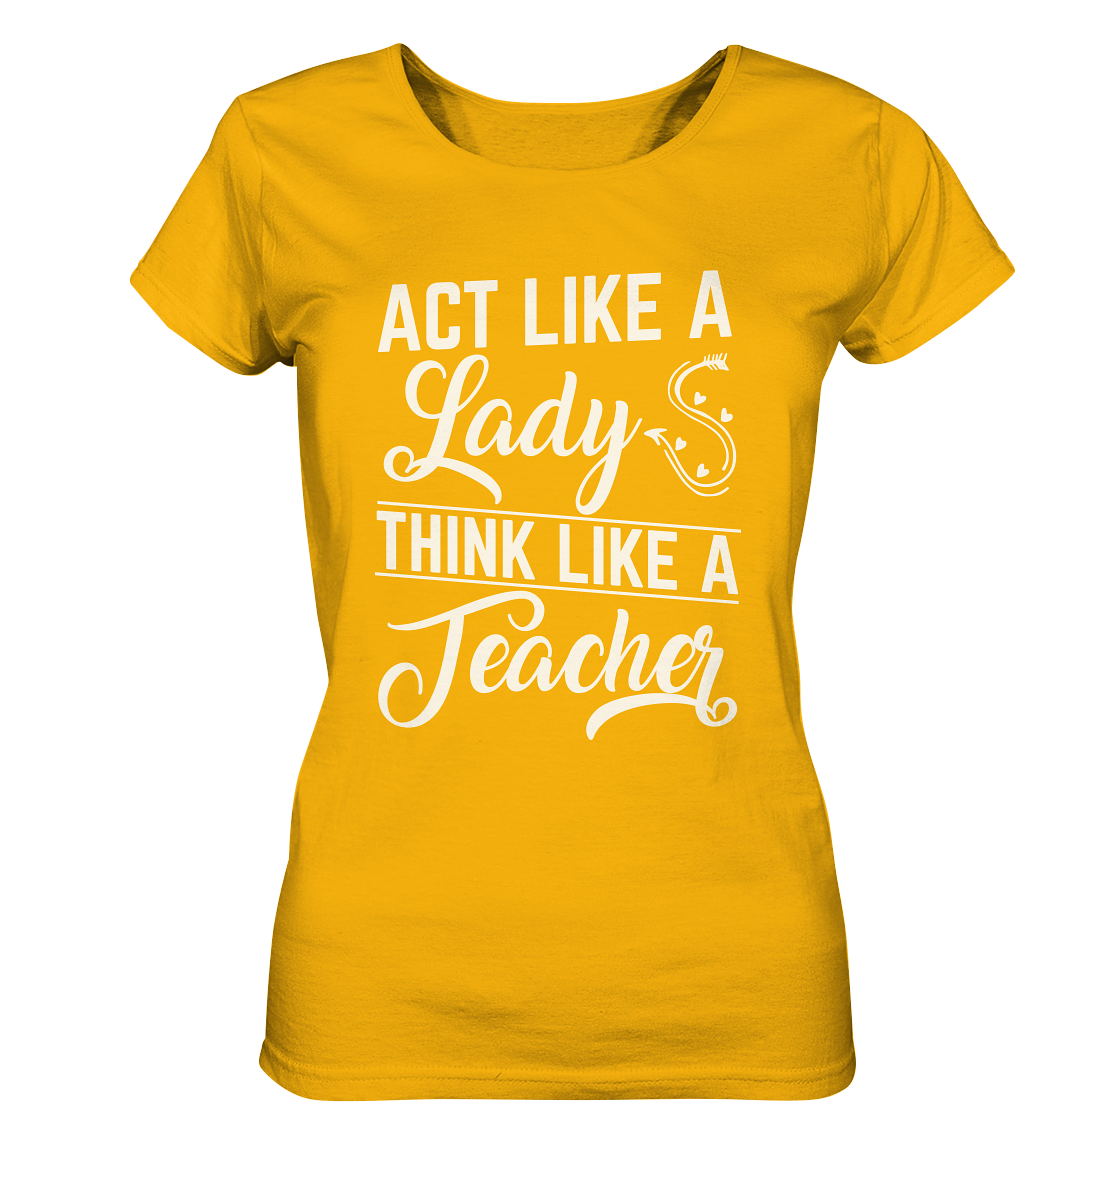 Lehrerin Act like a Lady - Ladies Organic Shirt